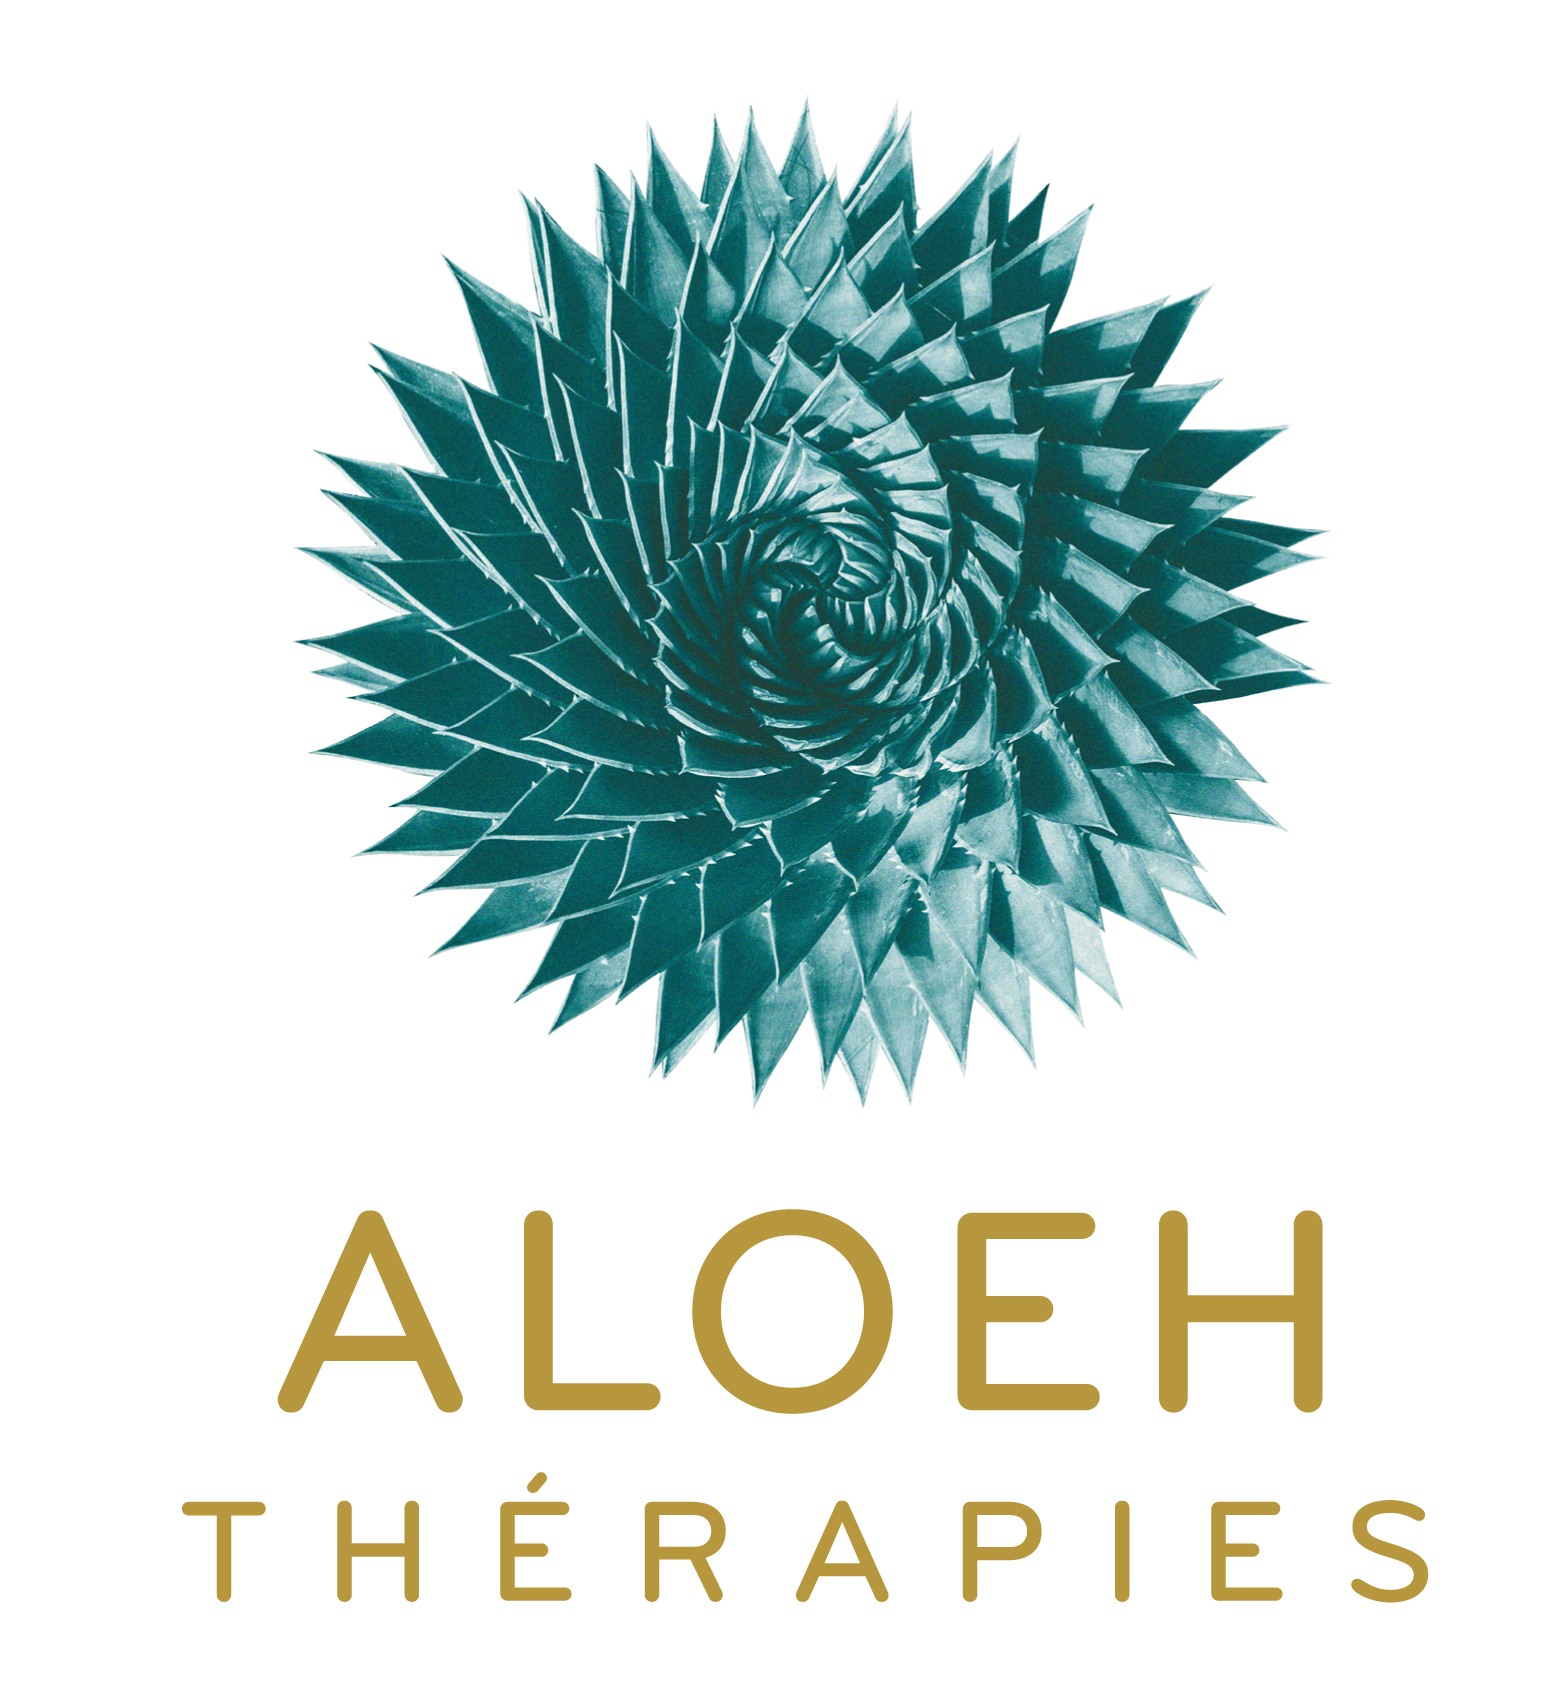 Aloeh therapies